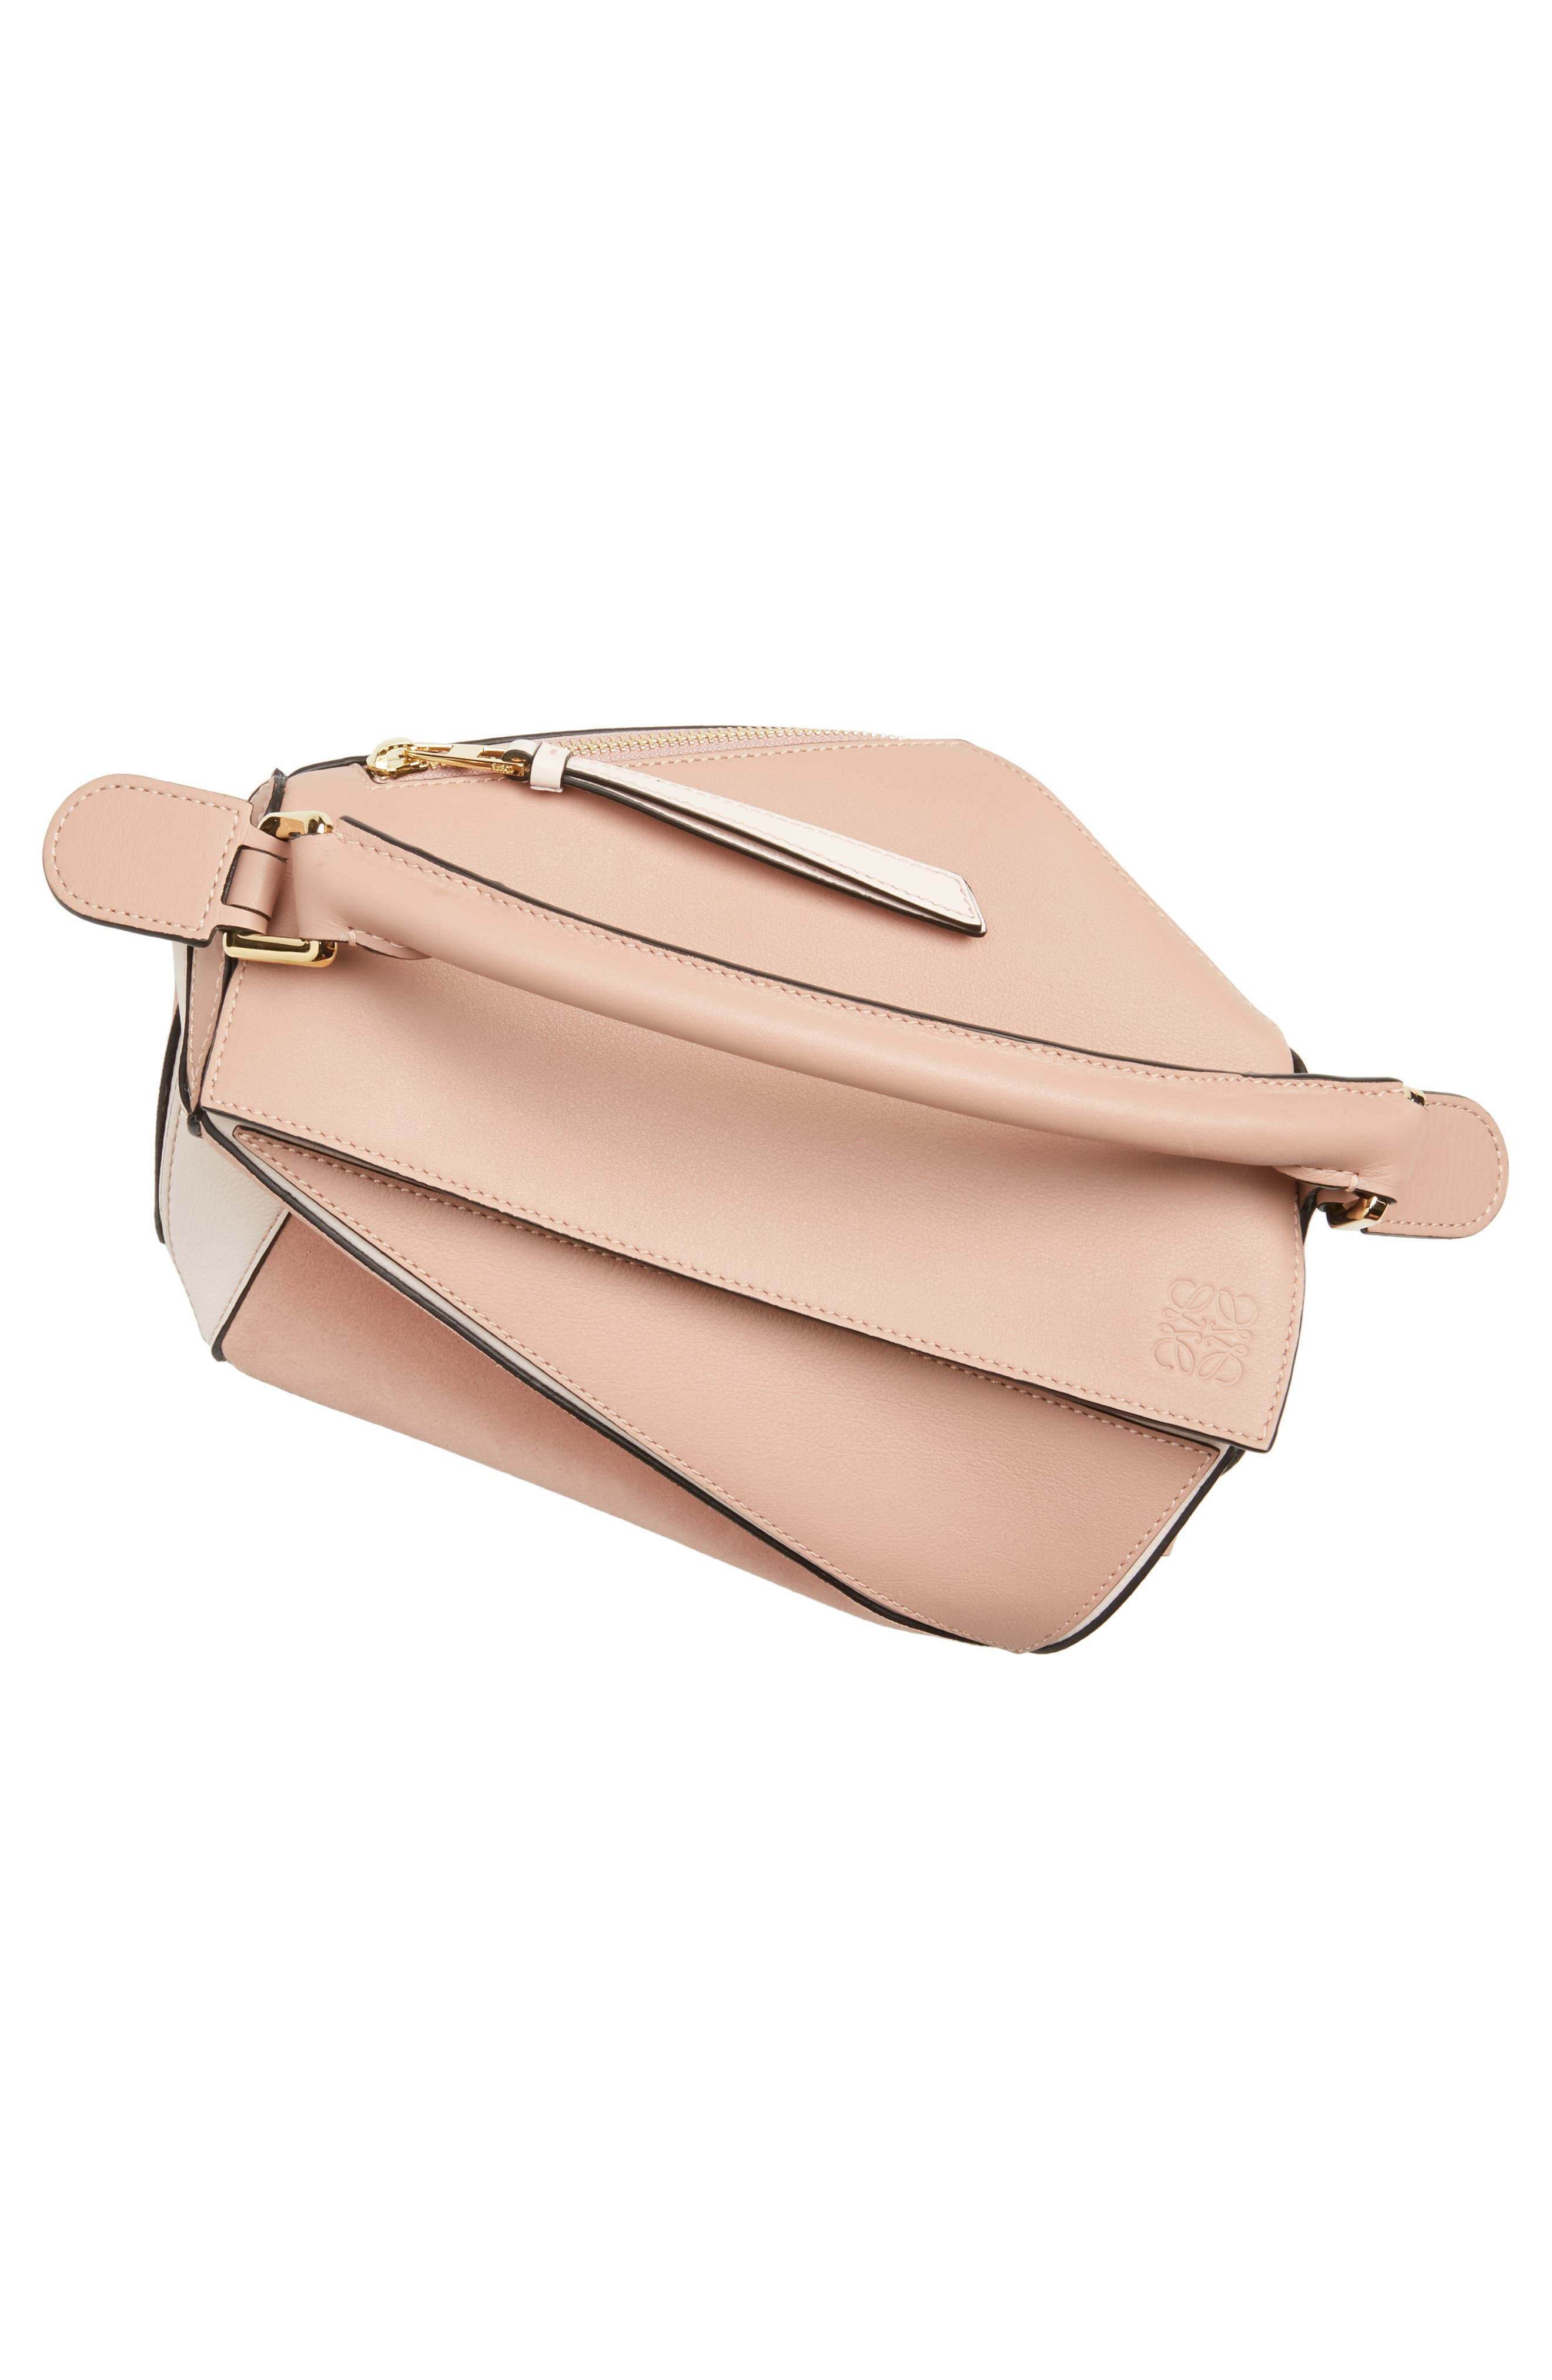 Small Puzzle Bicolor Leather Bag,                             Alternate thumbnail 7, color,                             BLUSH MULTITONE